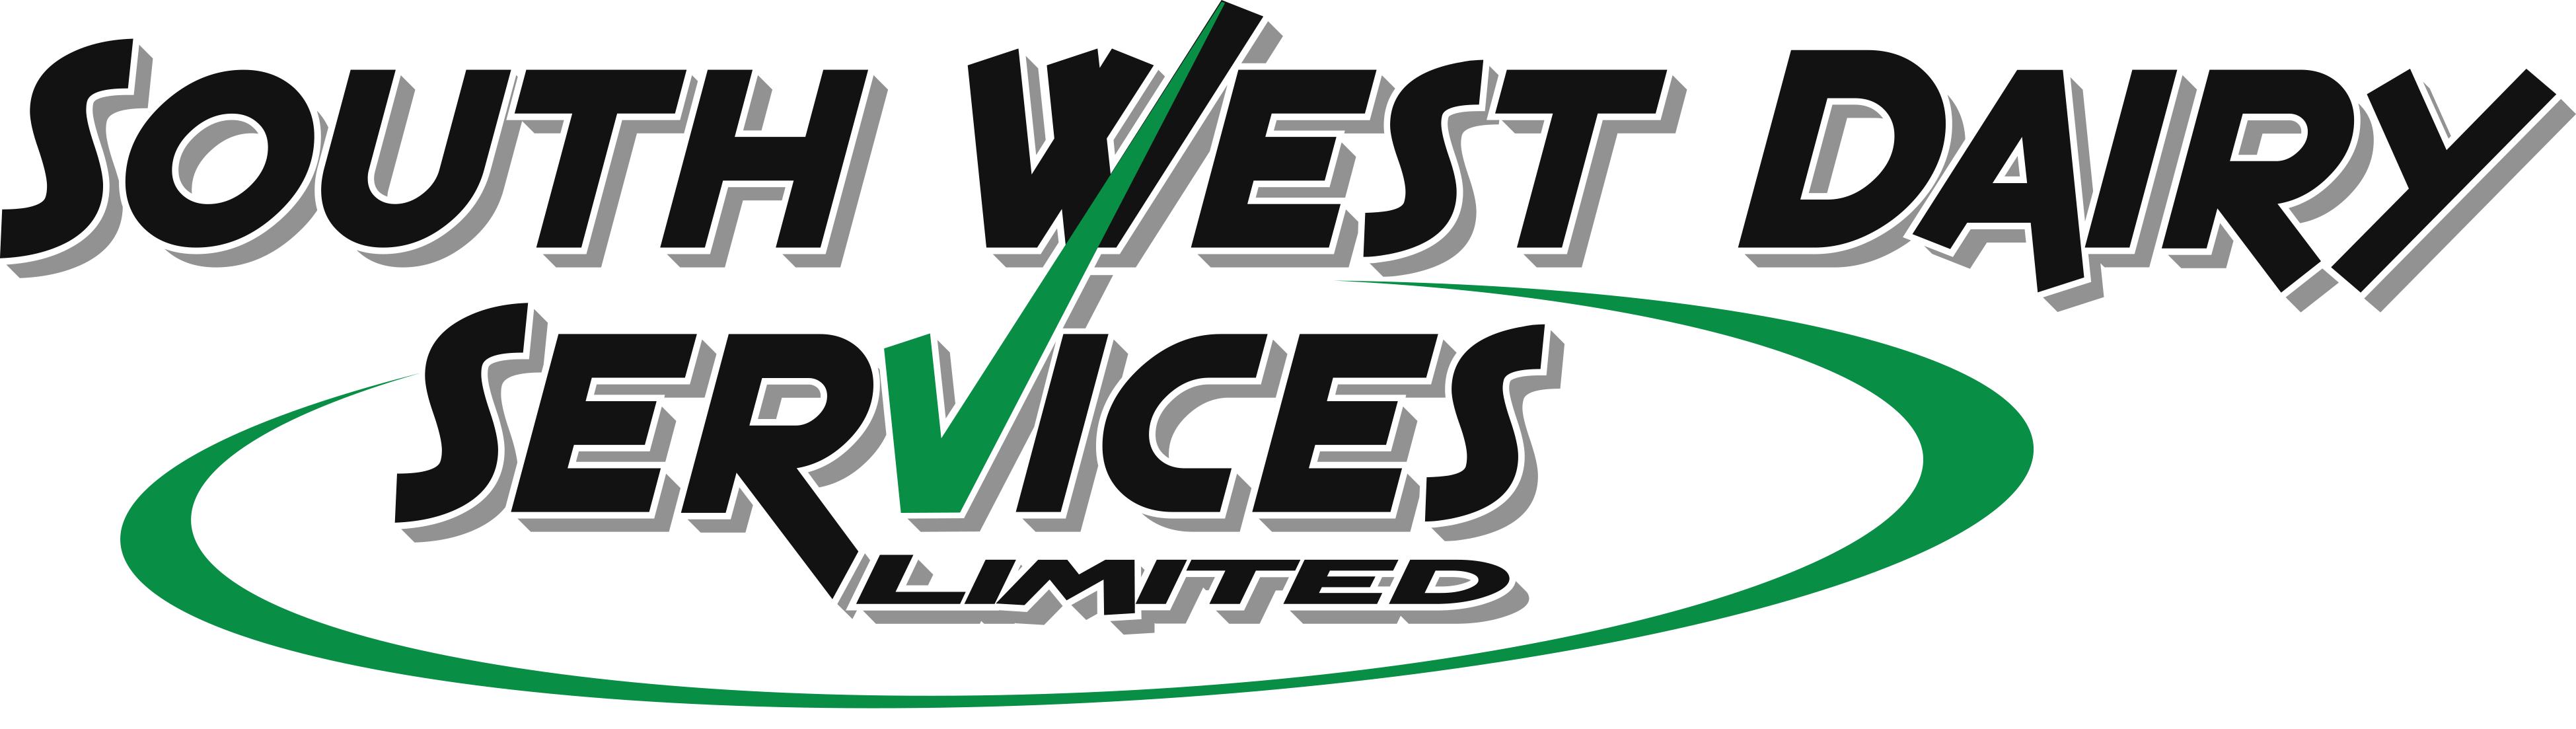 South West Dairy Services logo